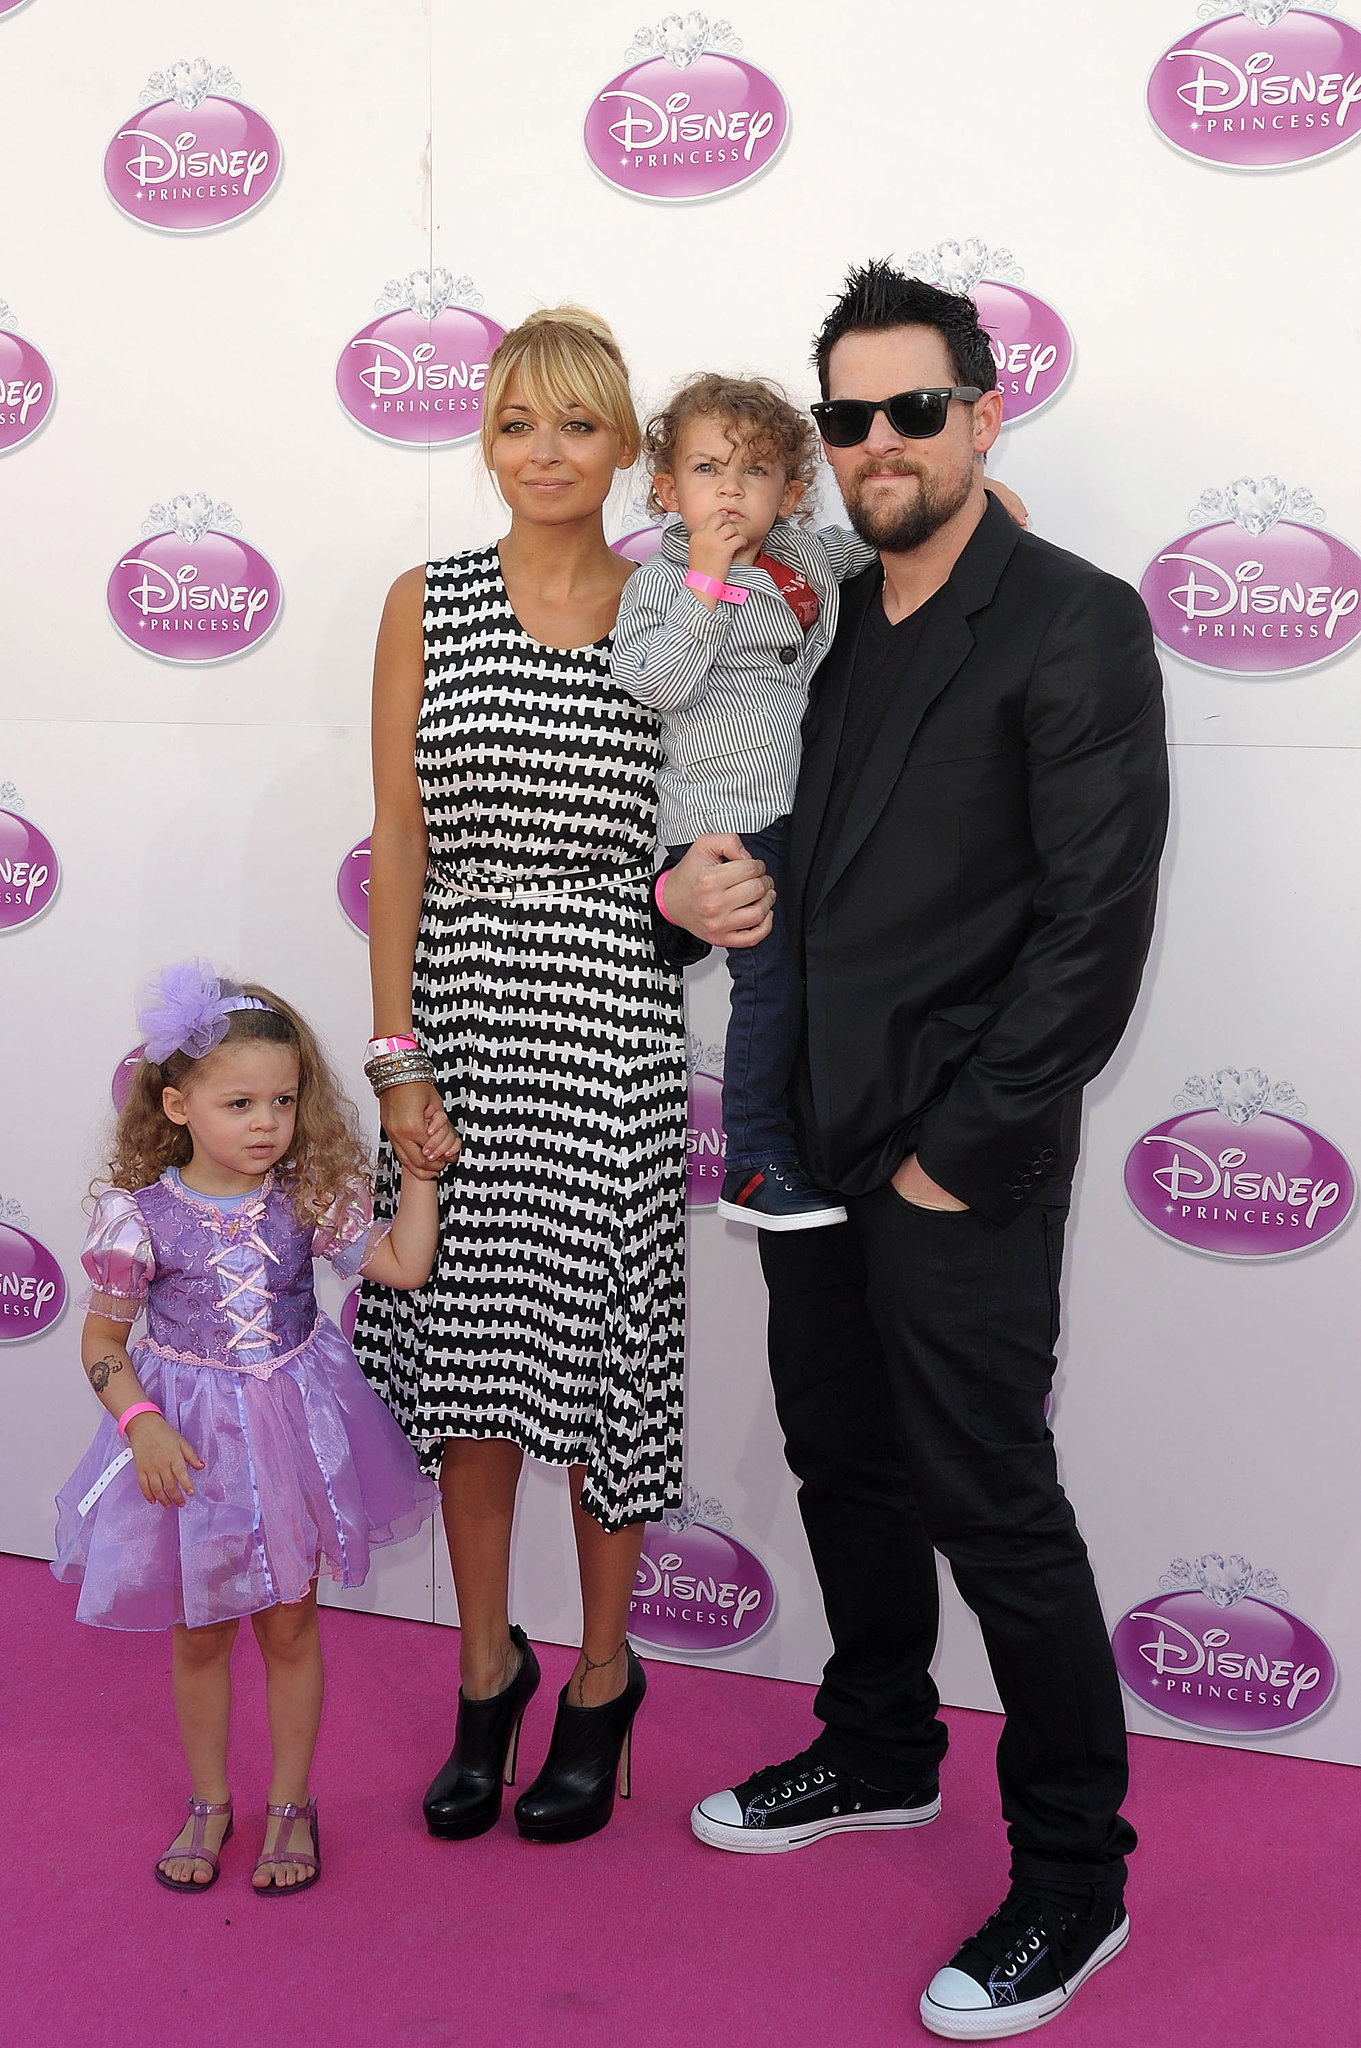 Nicole and Joel spent a fun family day with their little ones, Harlow and Sparrow, at a Disney event in London during October 2011.